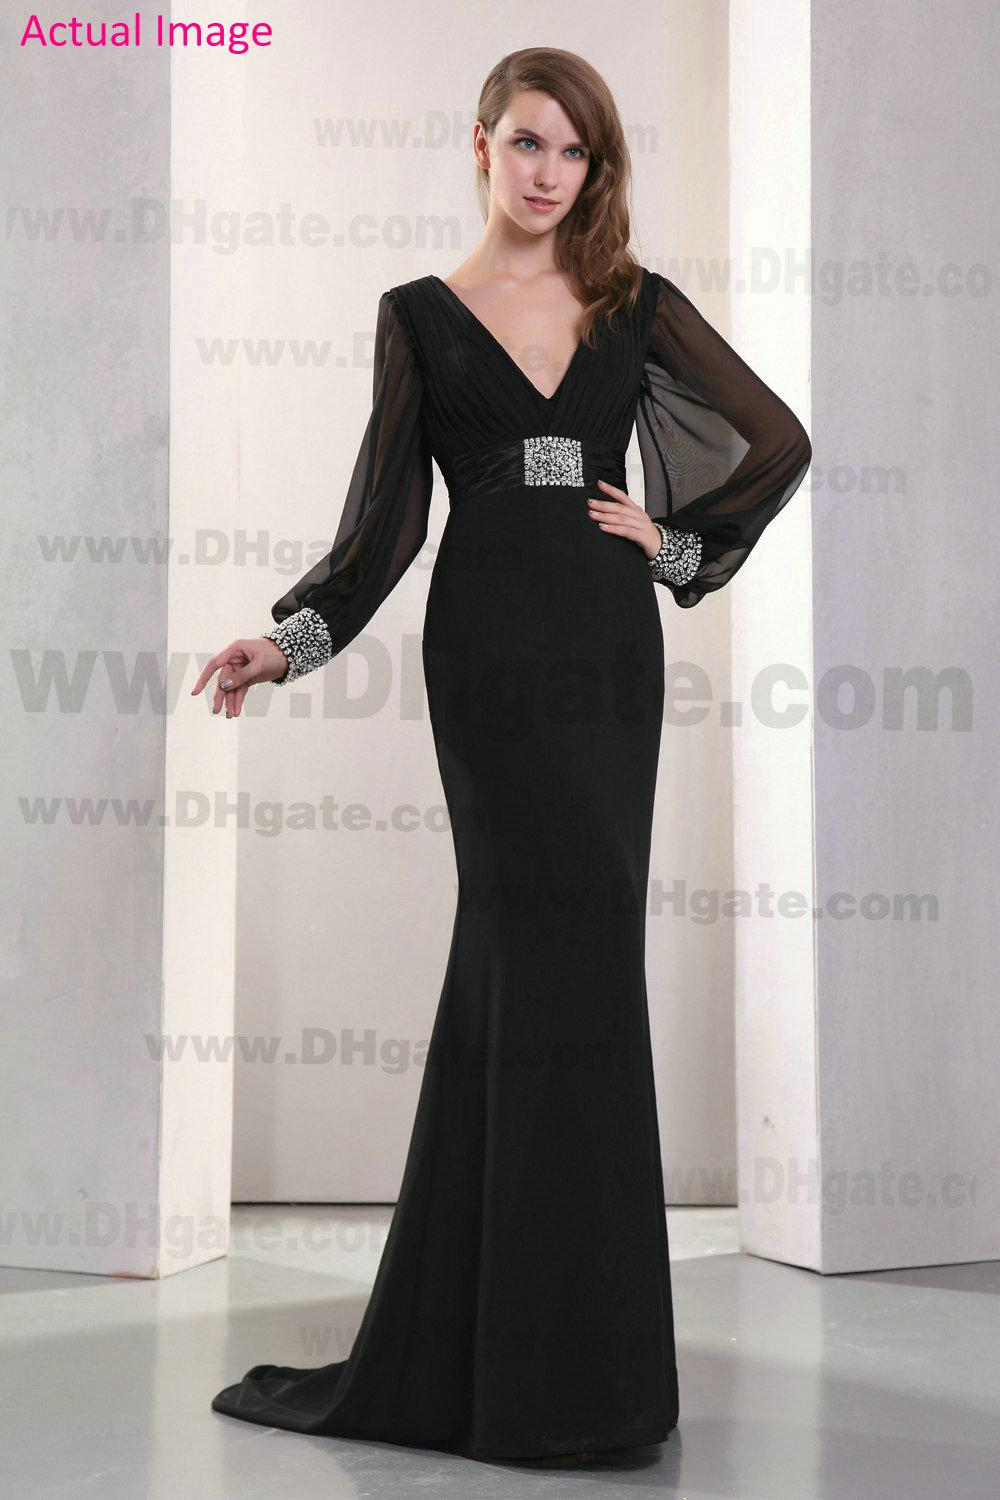 Black Evening Gown Photo Album - Reikian